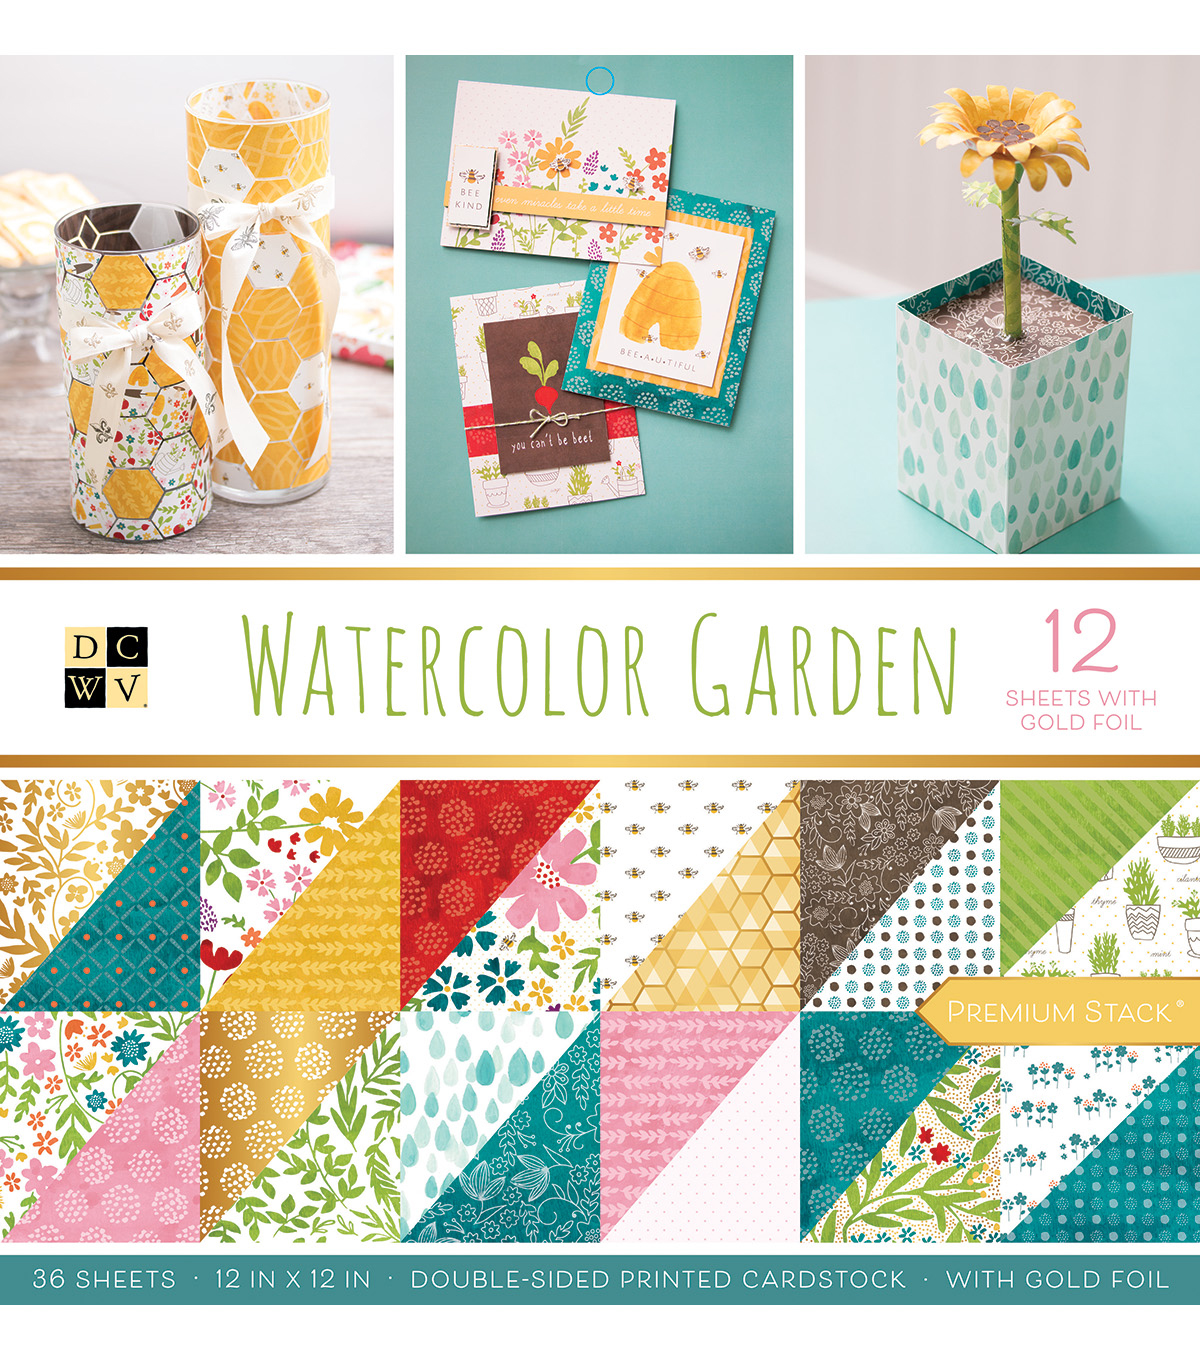 DCWV 36 Pack 12''x12'' Premium Stack Printed Cardstock-Watercolor Garden